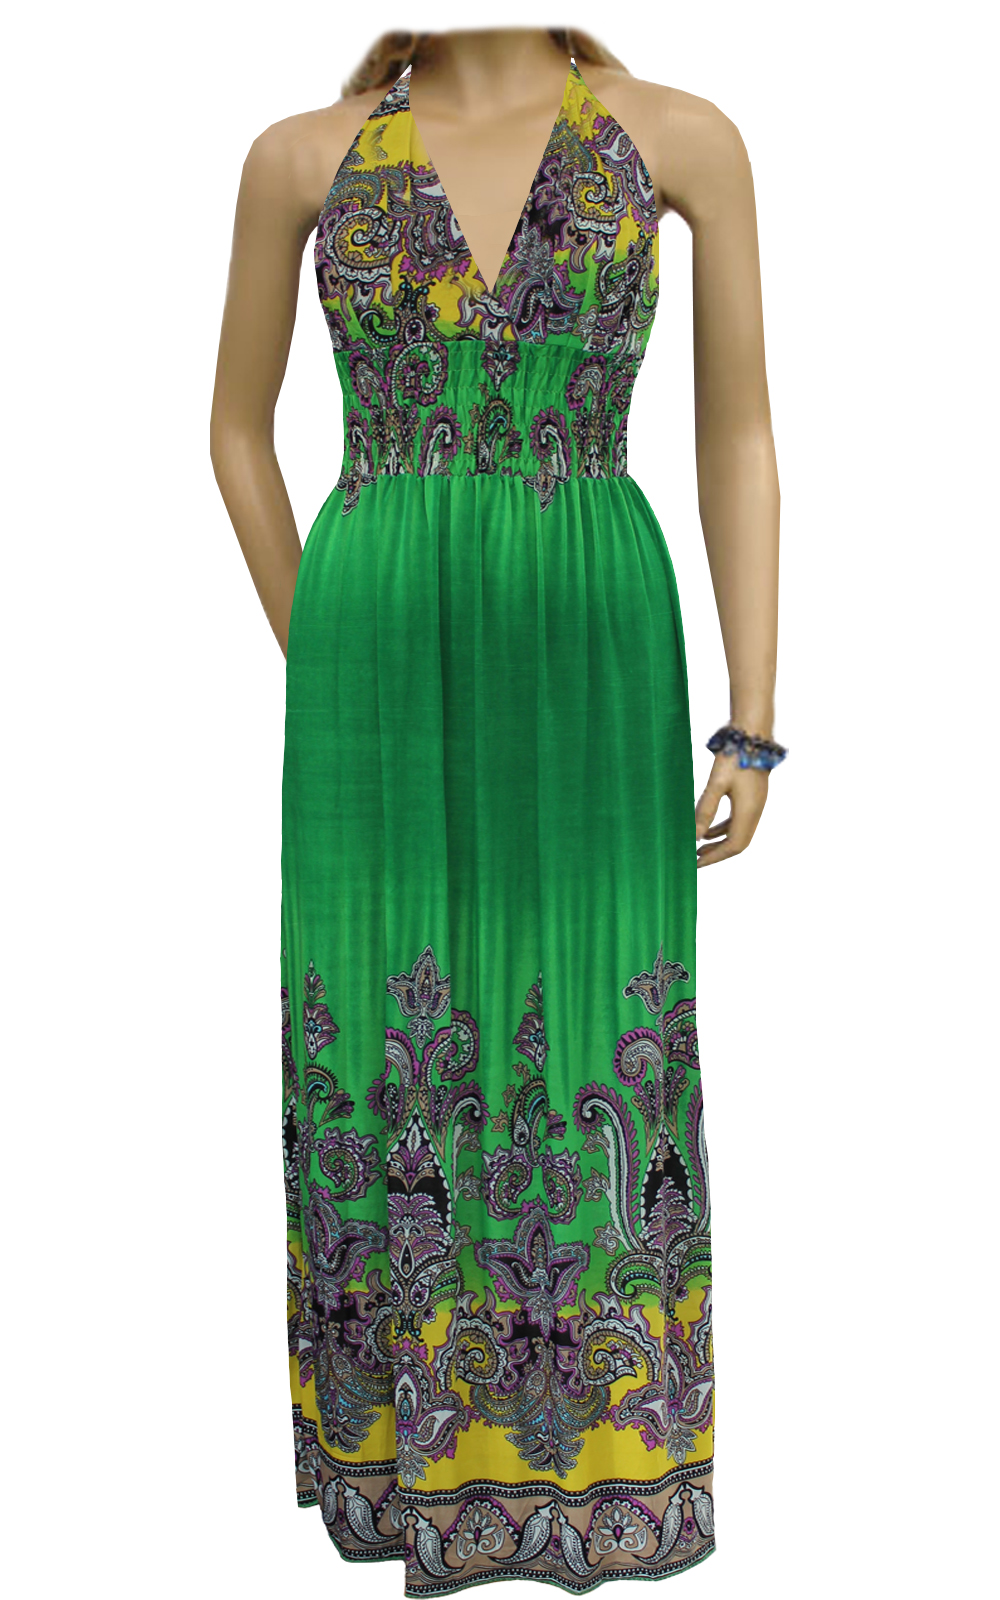 Maxi Dresses Size 14 ($ - $): 30 of items - Shop Maxi Dresses Size 14 from ALL your favorite stores & find HUGE SAVINGS up to 80% off Maxi Dresses Size 14, including GREAT DEALS like